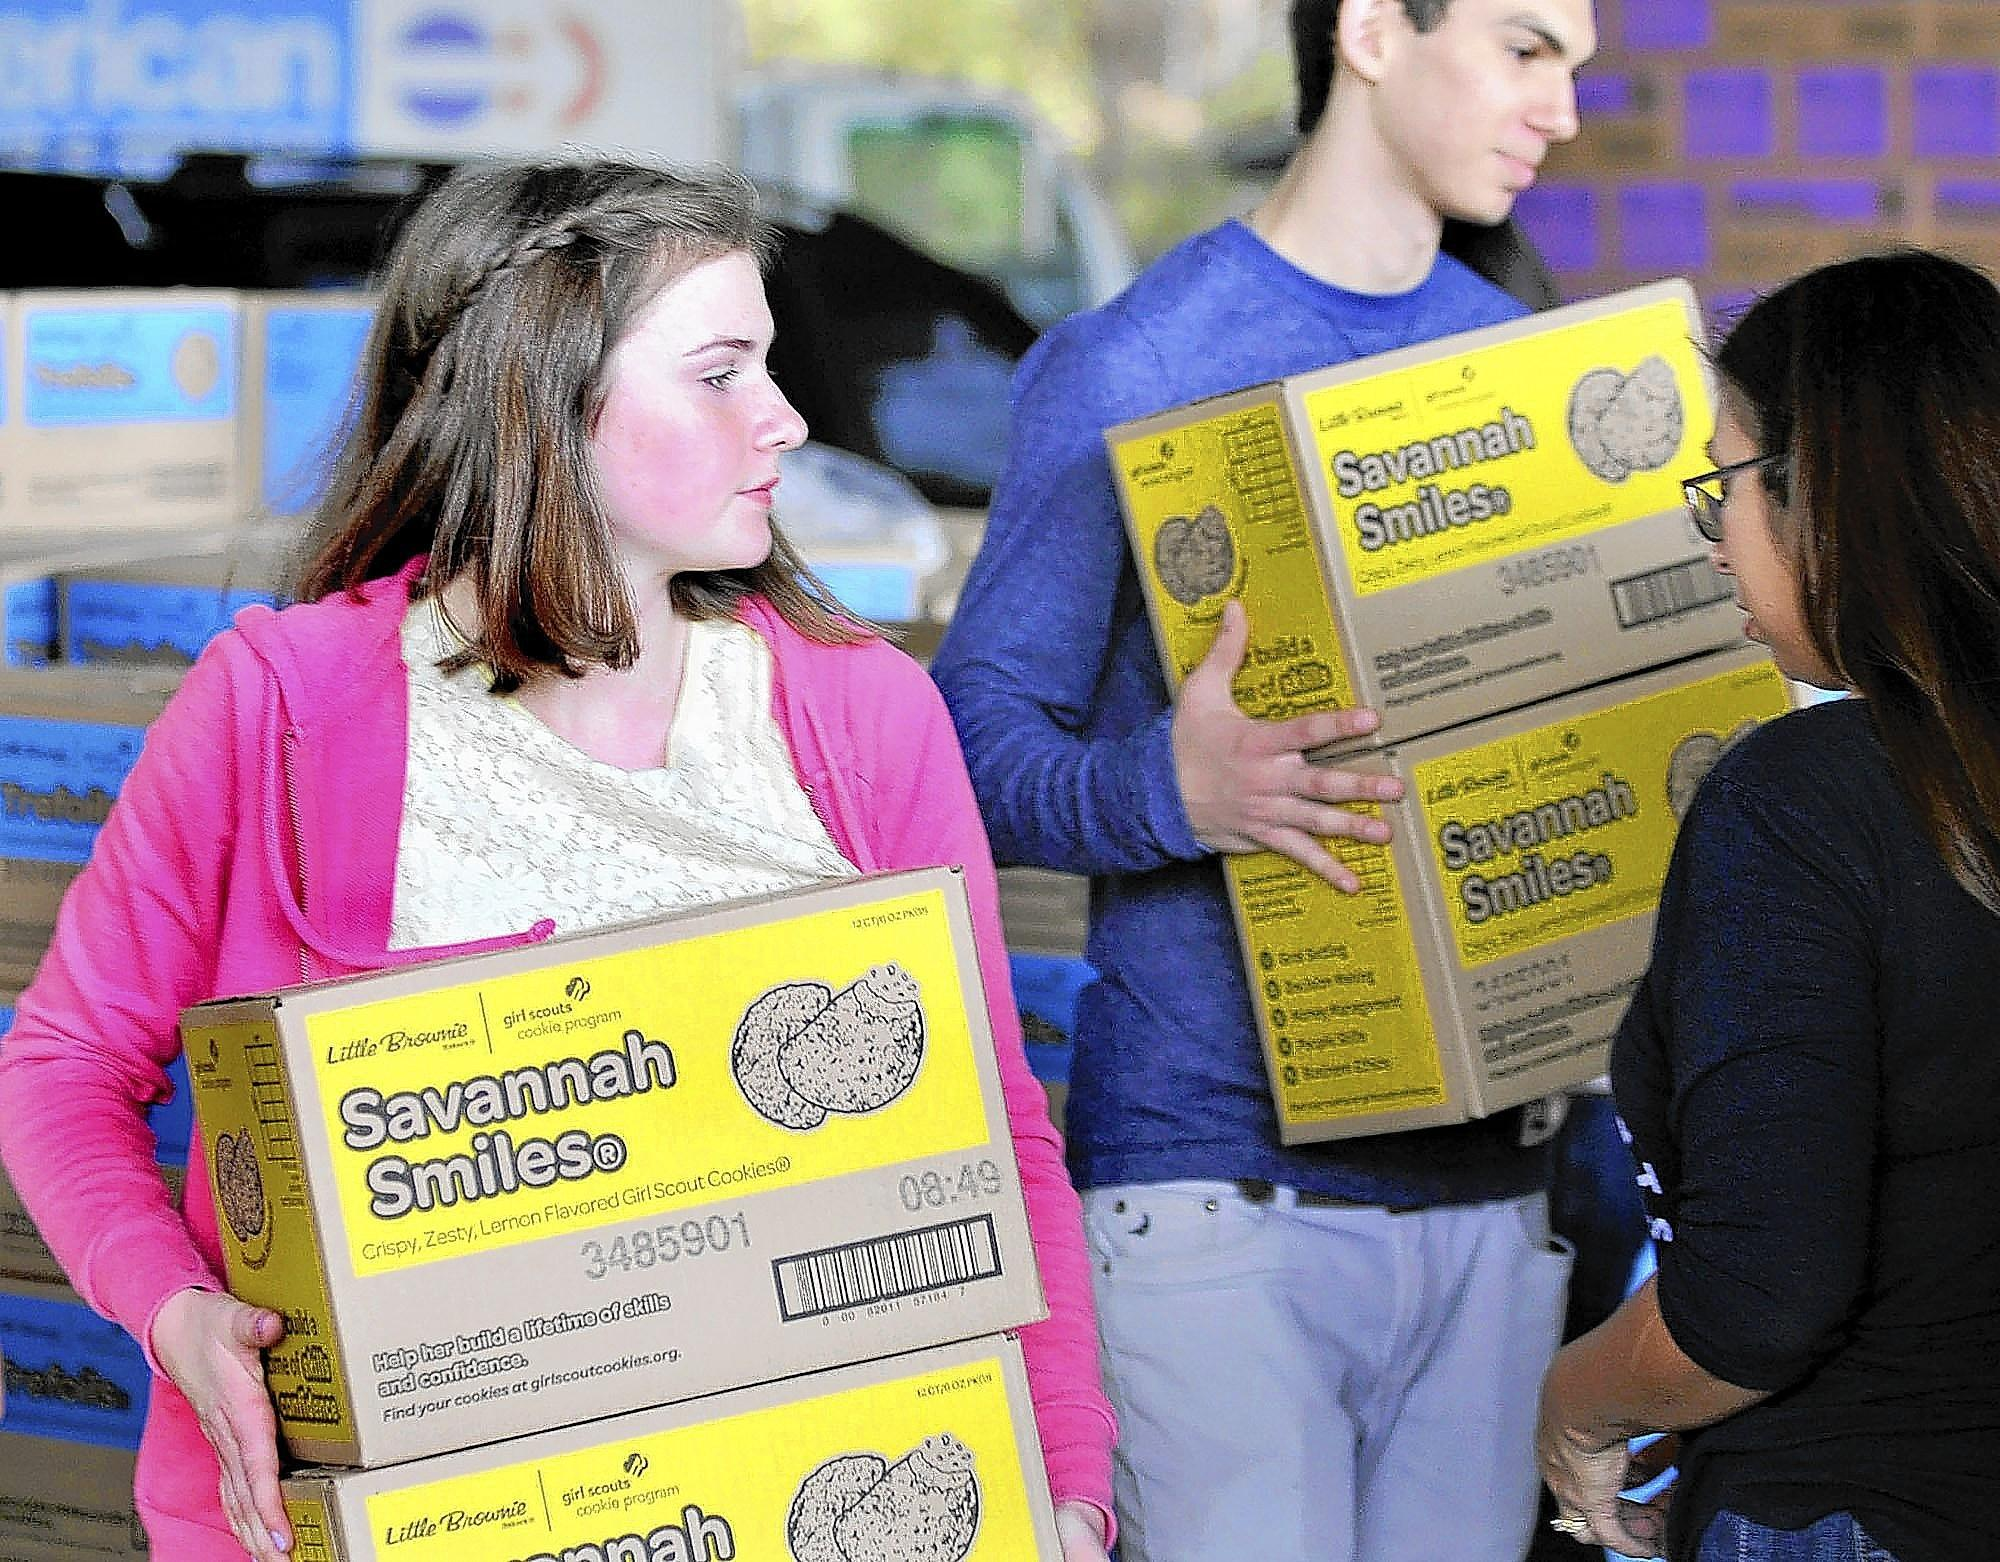 Girl Scout Emily Haug, 15, of Tujunga, helps with loading of cookies at a La Cañada Girl Scout cookie delivery drive-through event at Flintridge Prep. More than 70,000 boxes of Girl Scout Cookies were picked up by more than 80 Girl Scout troop leaders from the Crescenta Valley and Glendale areas on Saturday, Feb. 22, 2014.